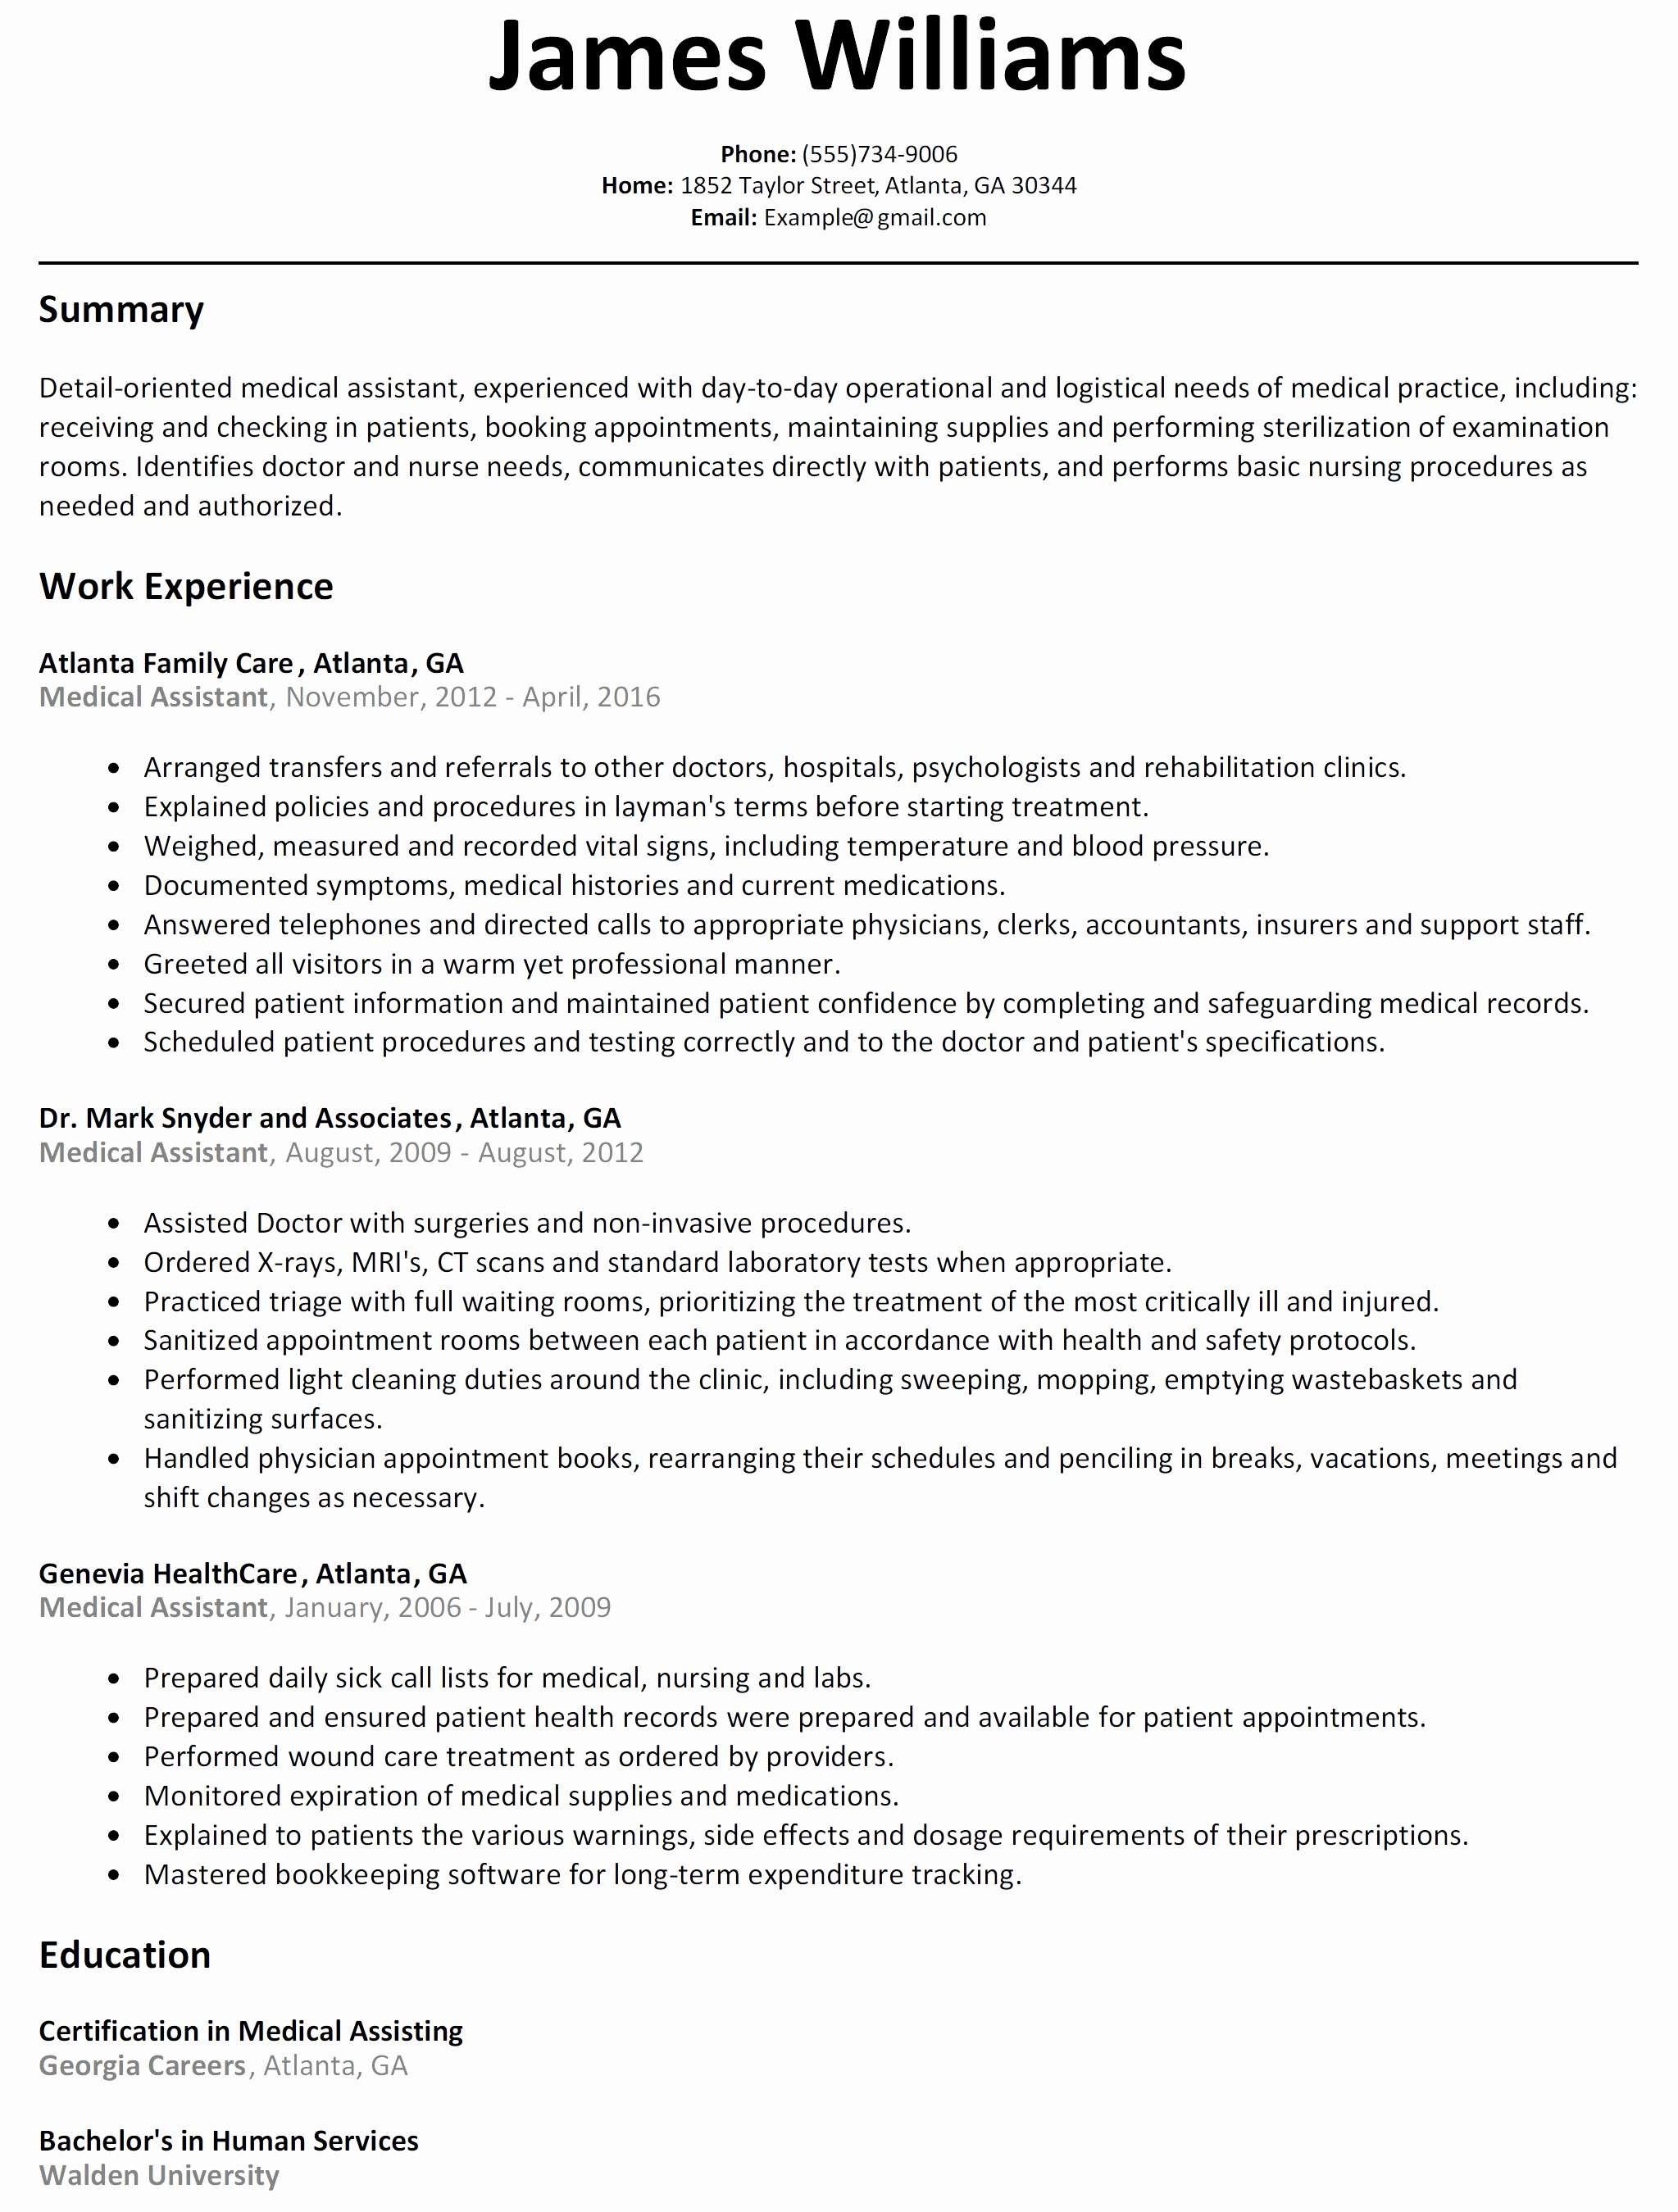 Hr Generalist Resume - Sample Hr Generalist Resume Fresh Sample Hr Generalist Resume Lovely